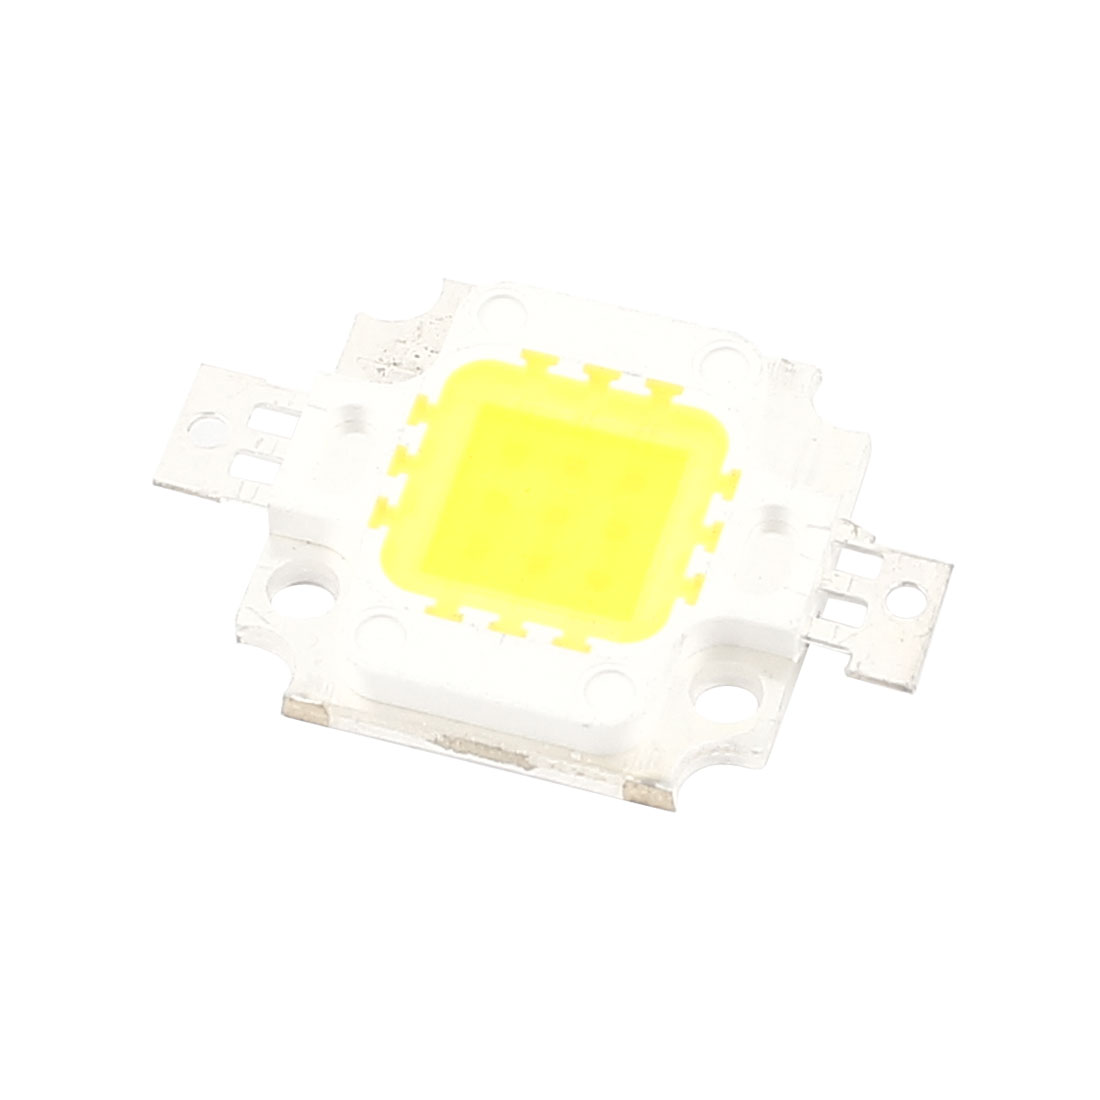 Square Shape White Light Lamp SMD COB LED Module Chip DC 10-12V 10W